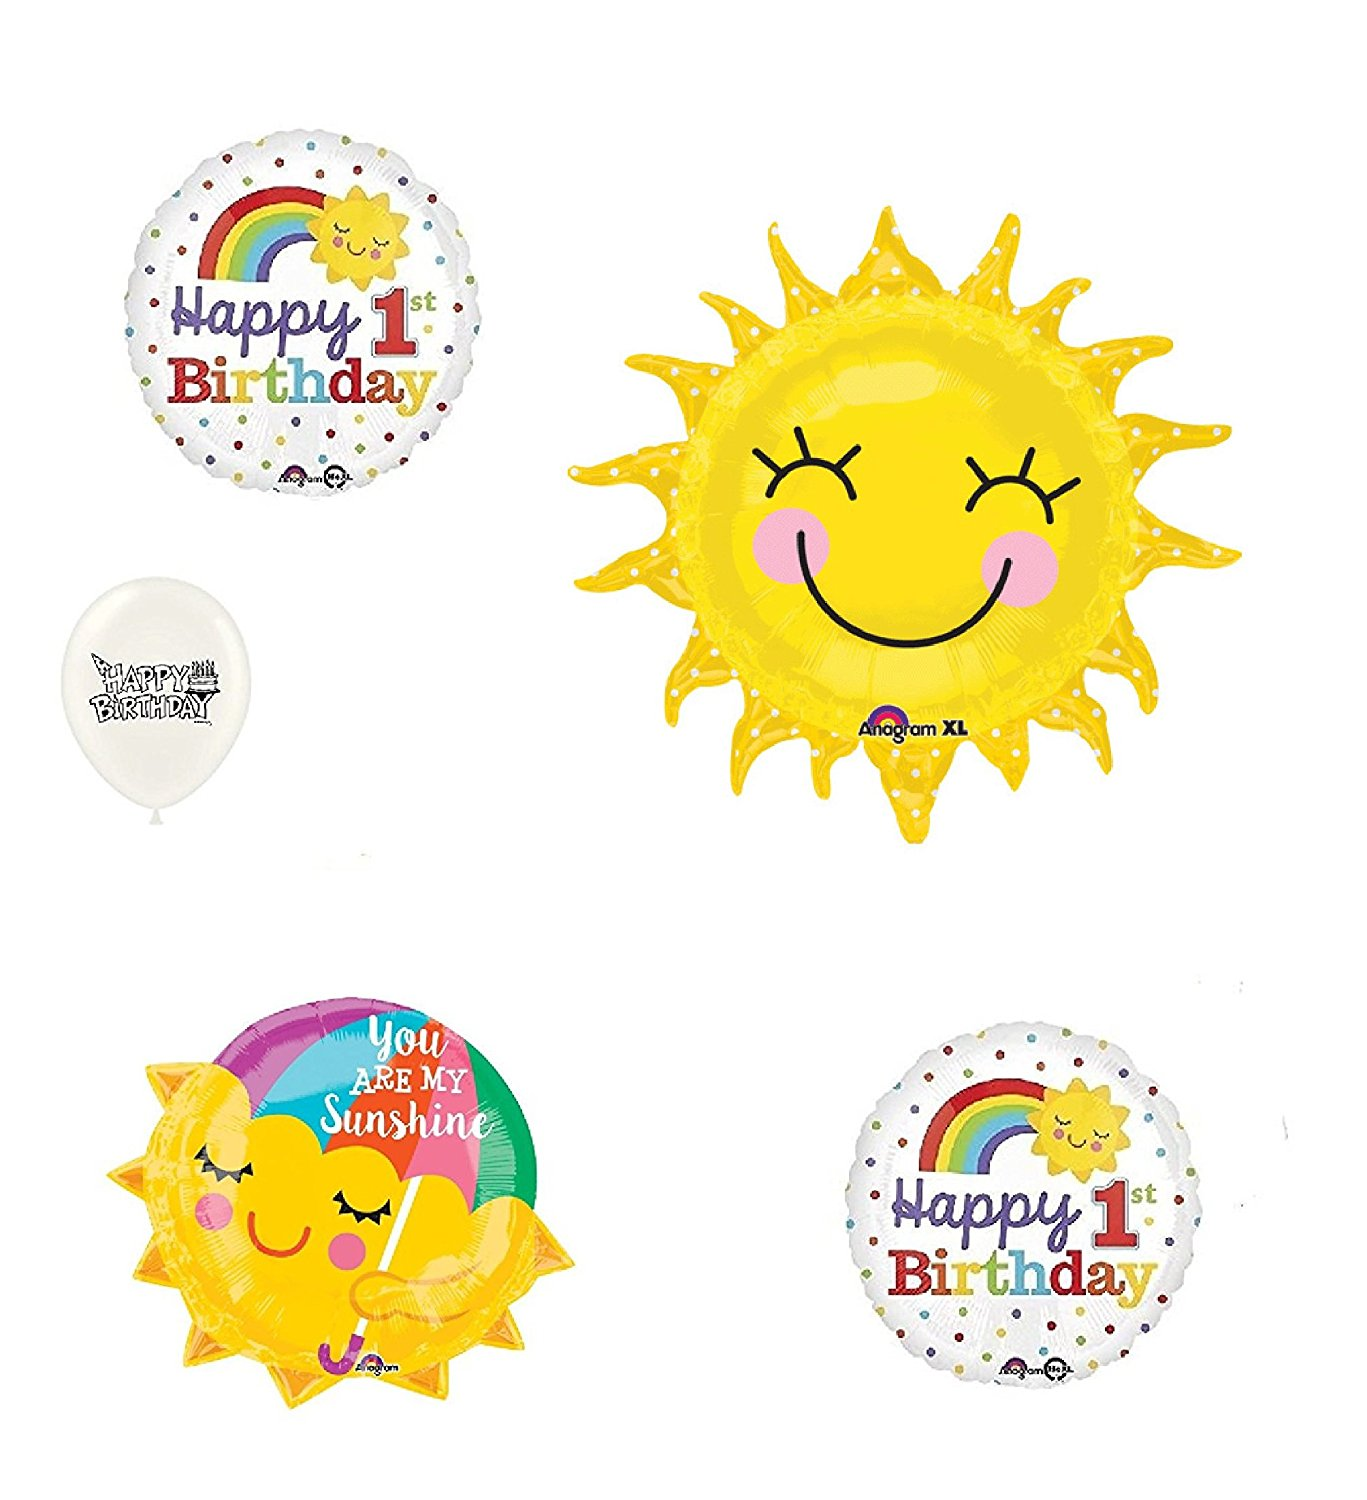 You are my Sunshine 1st Birthday Rainbow Sunshine 5 Piece Bouquet of Balloons